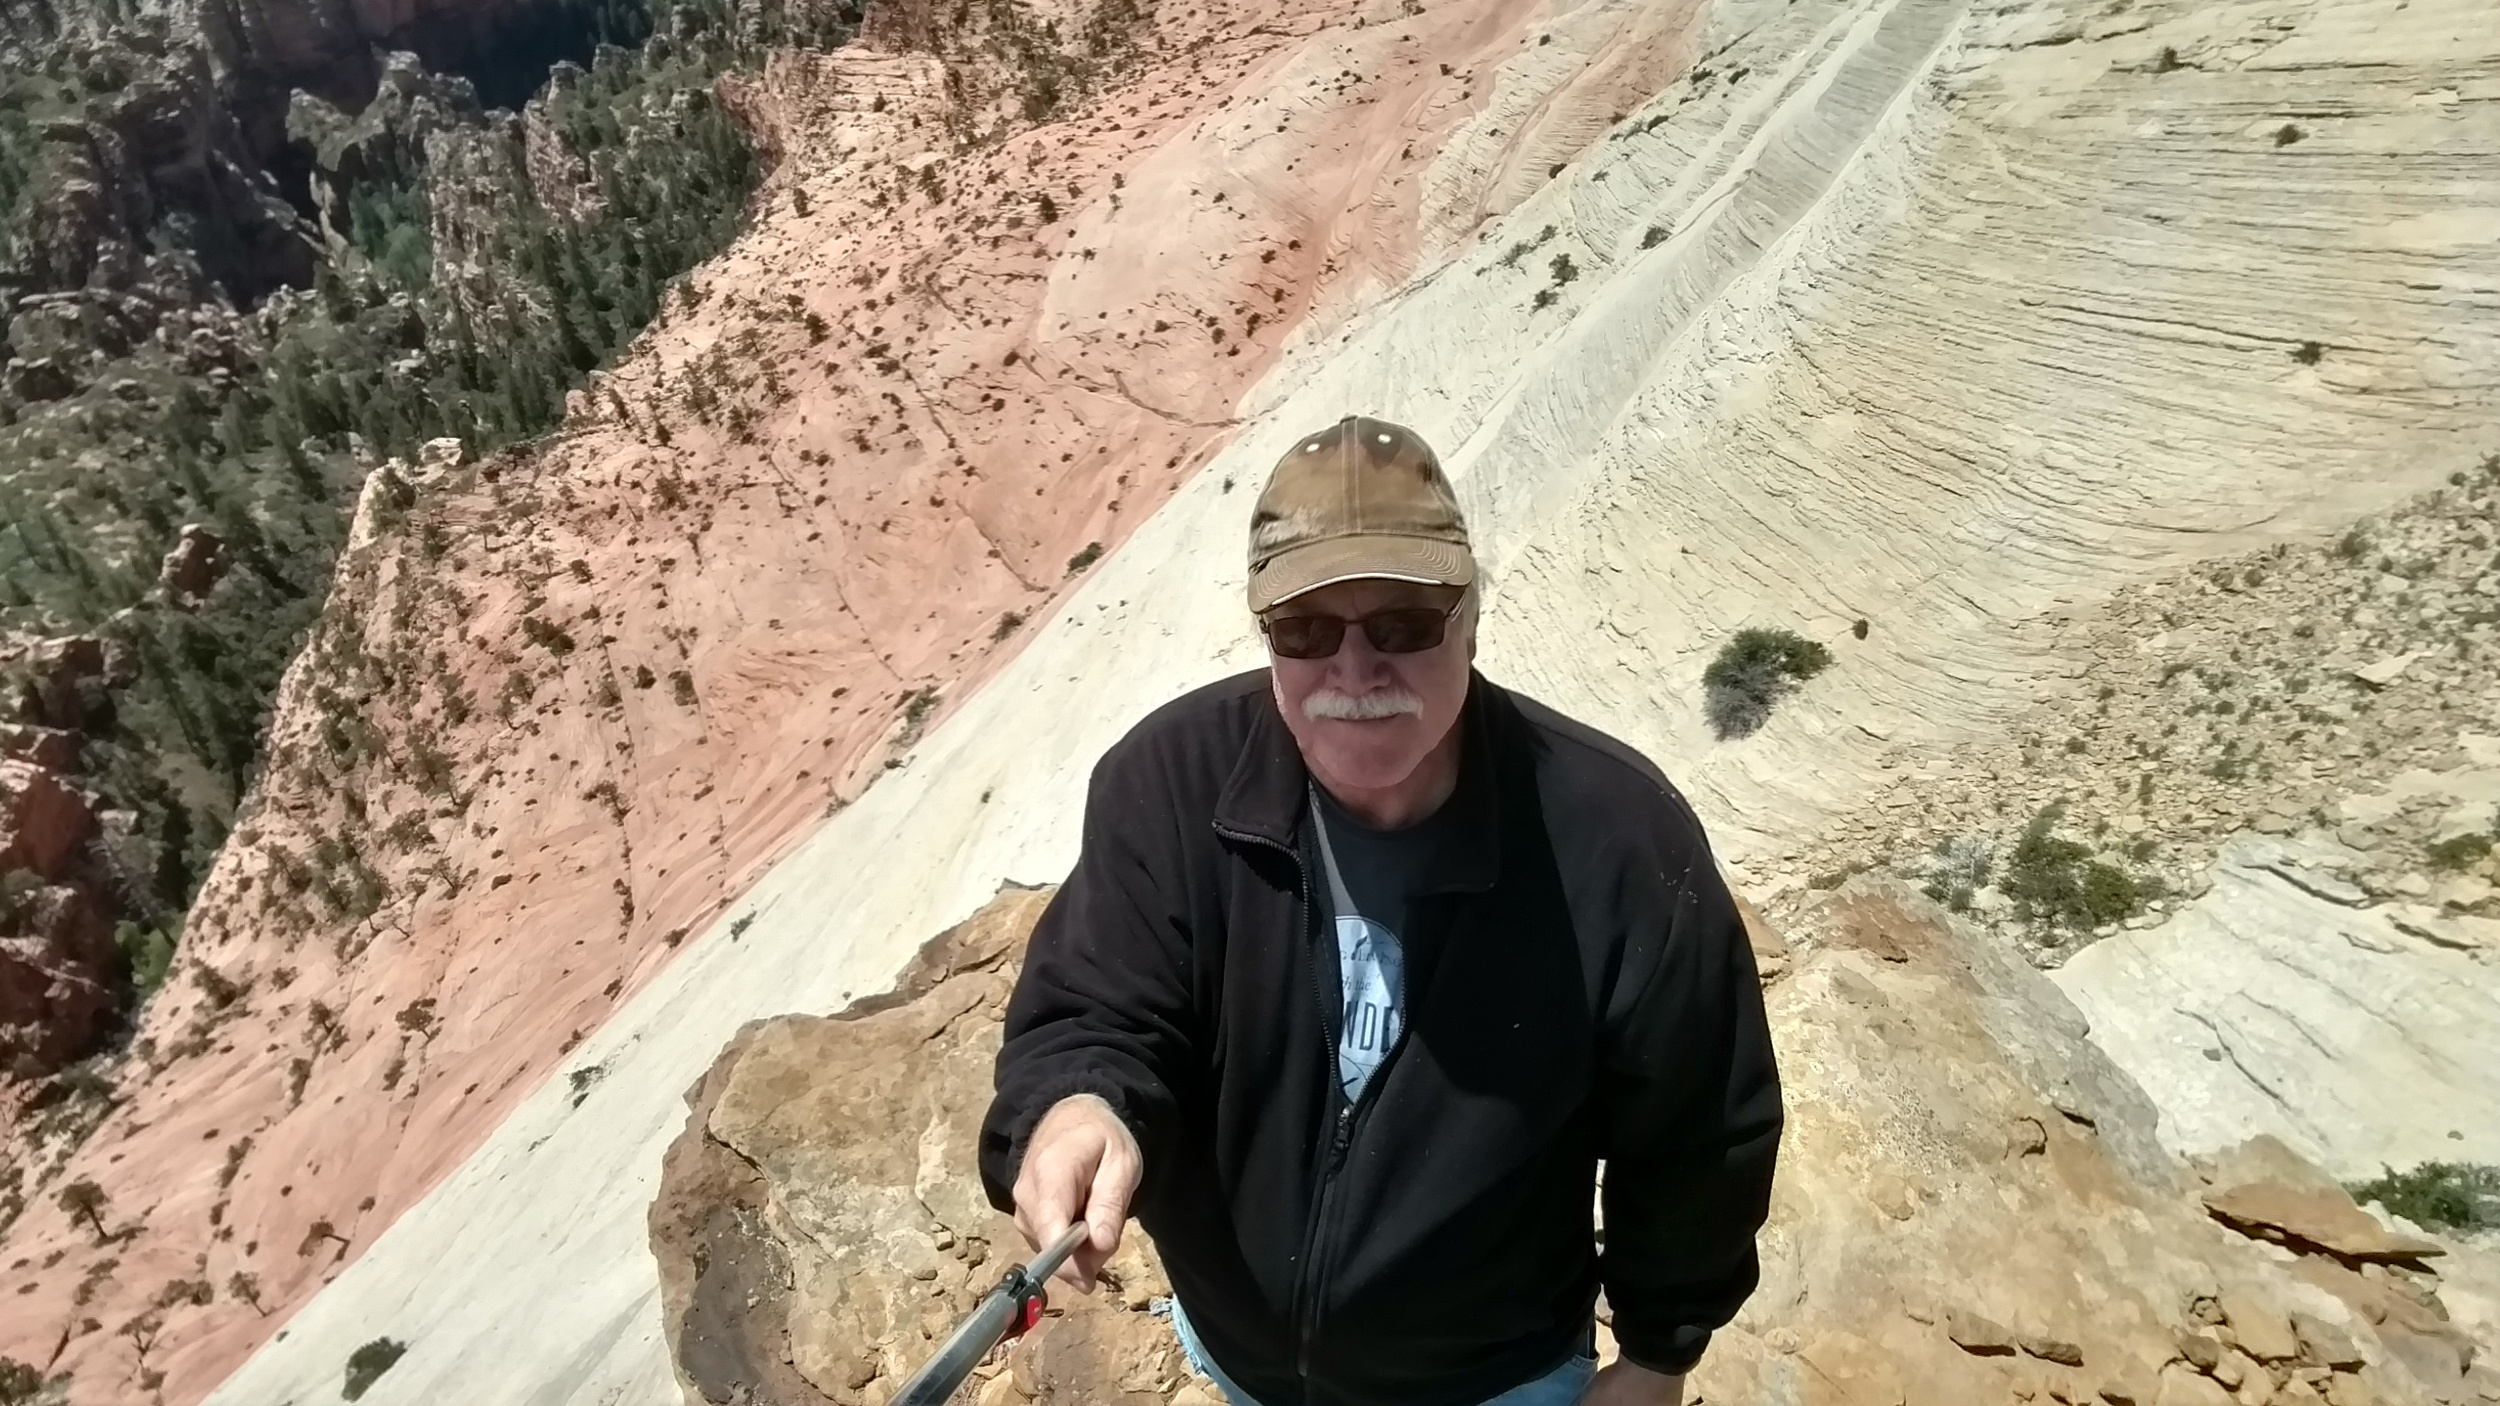 Selfie showing the rocky outcropping and dramatic drop off to the Subway.